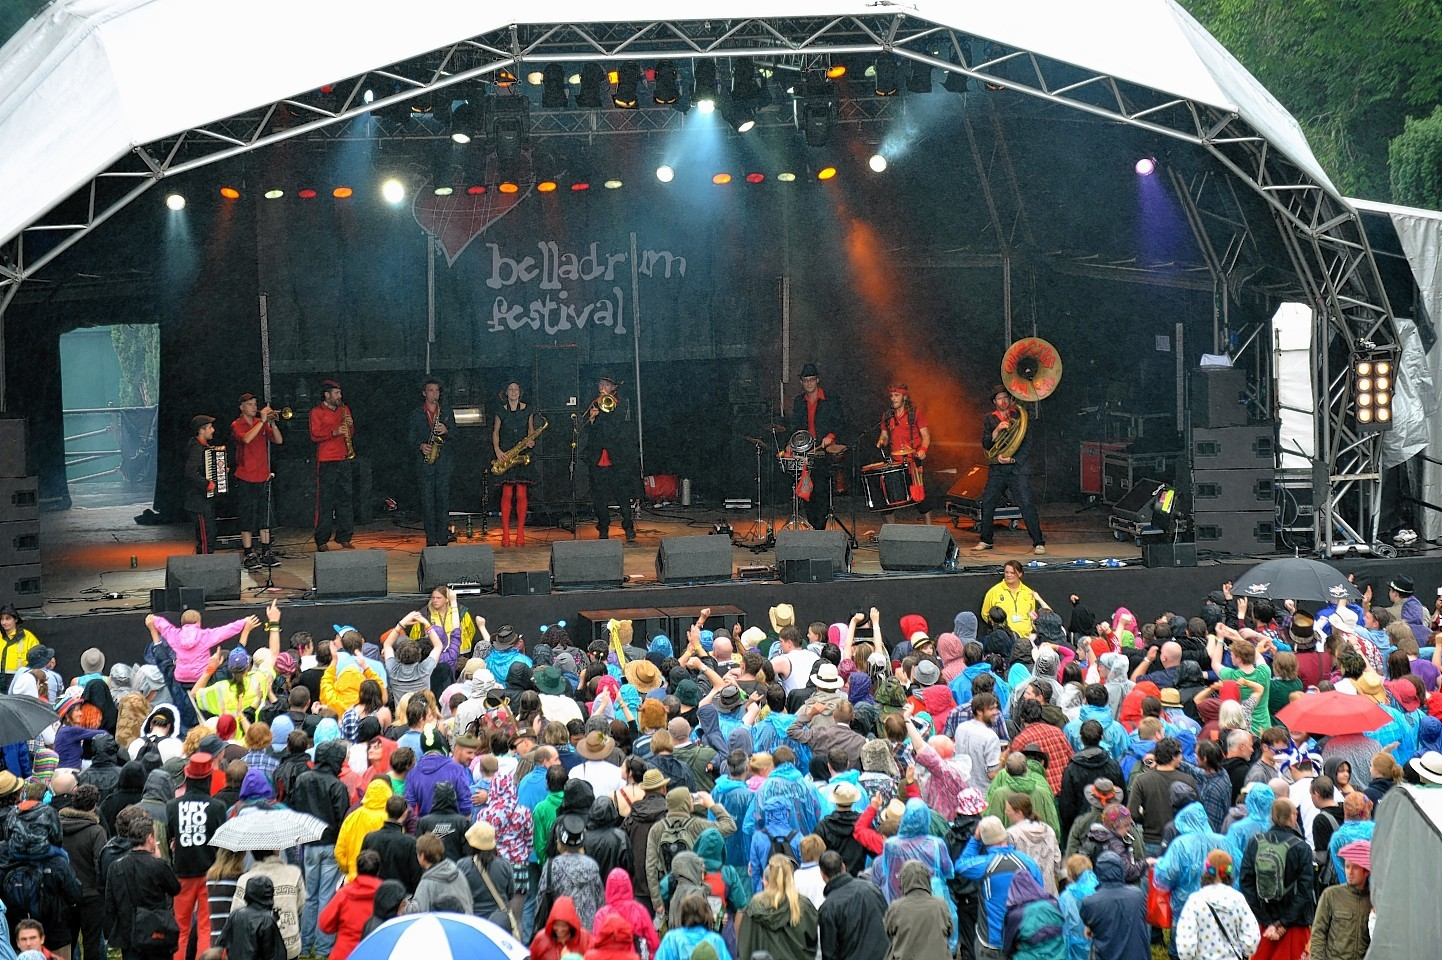 Those taking part can enter a prize draw that includes tickets to Belladrum Tartan Heart Festival and Groove Loch Ness and Spotify and Netflix vouchers.